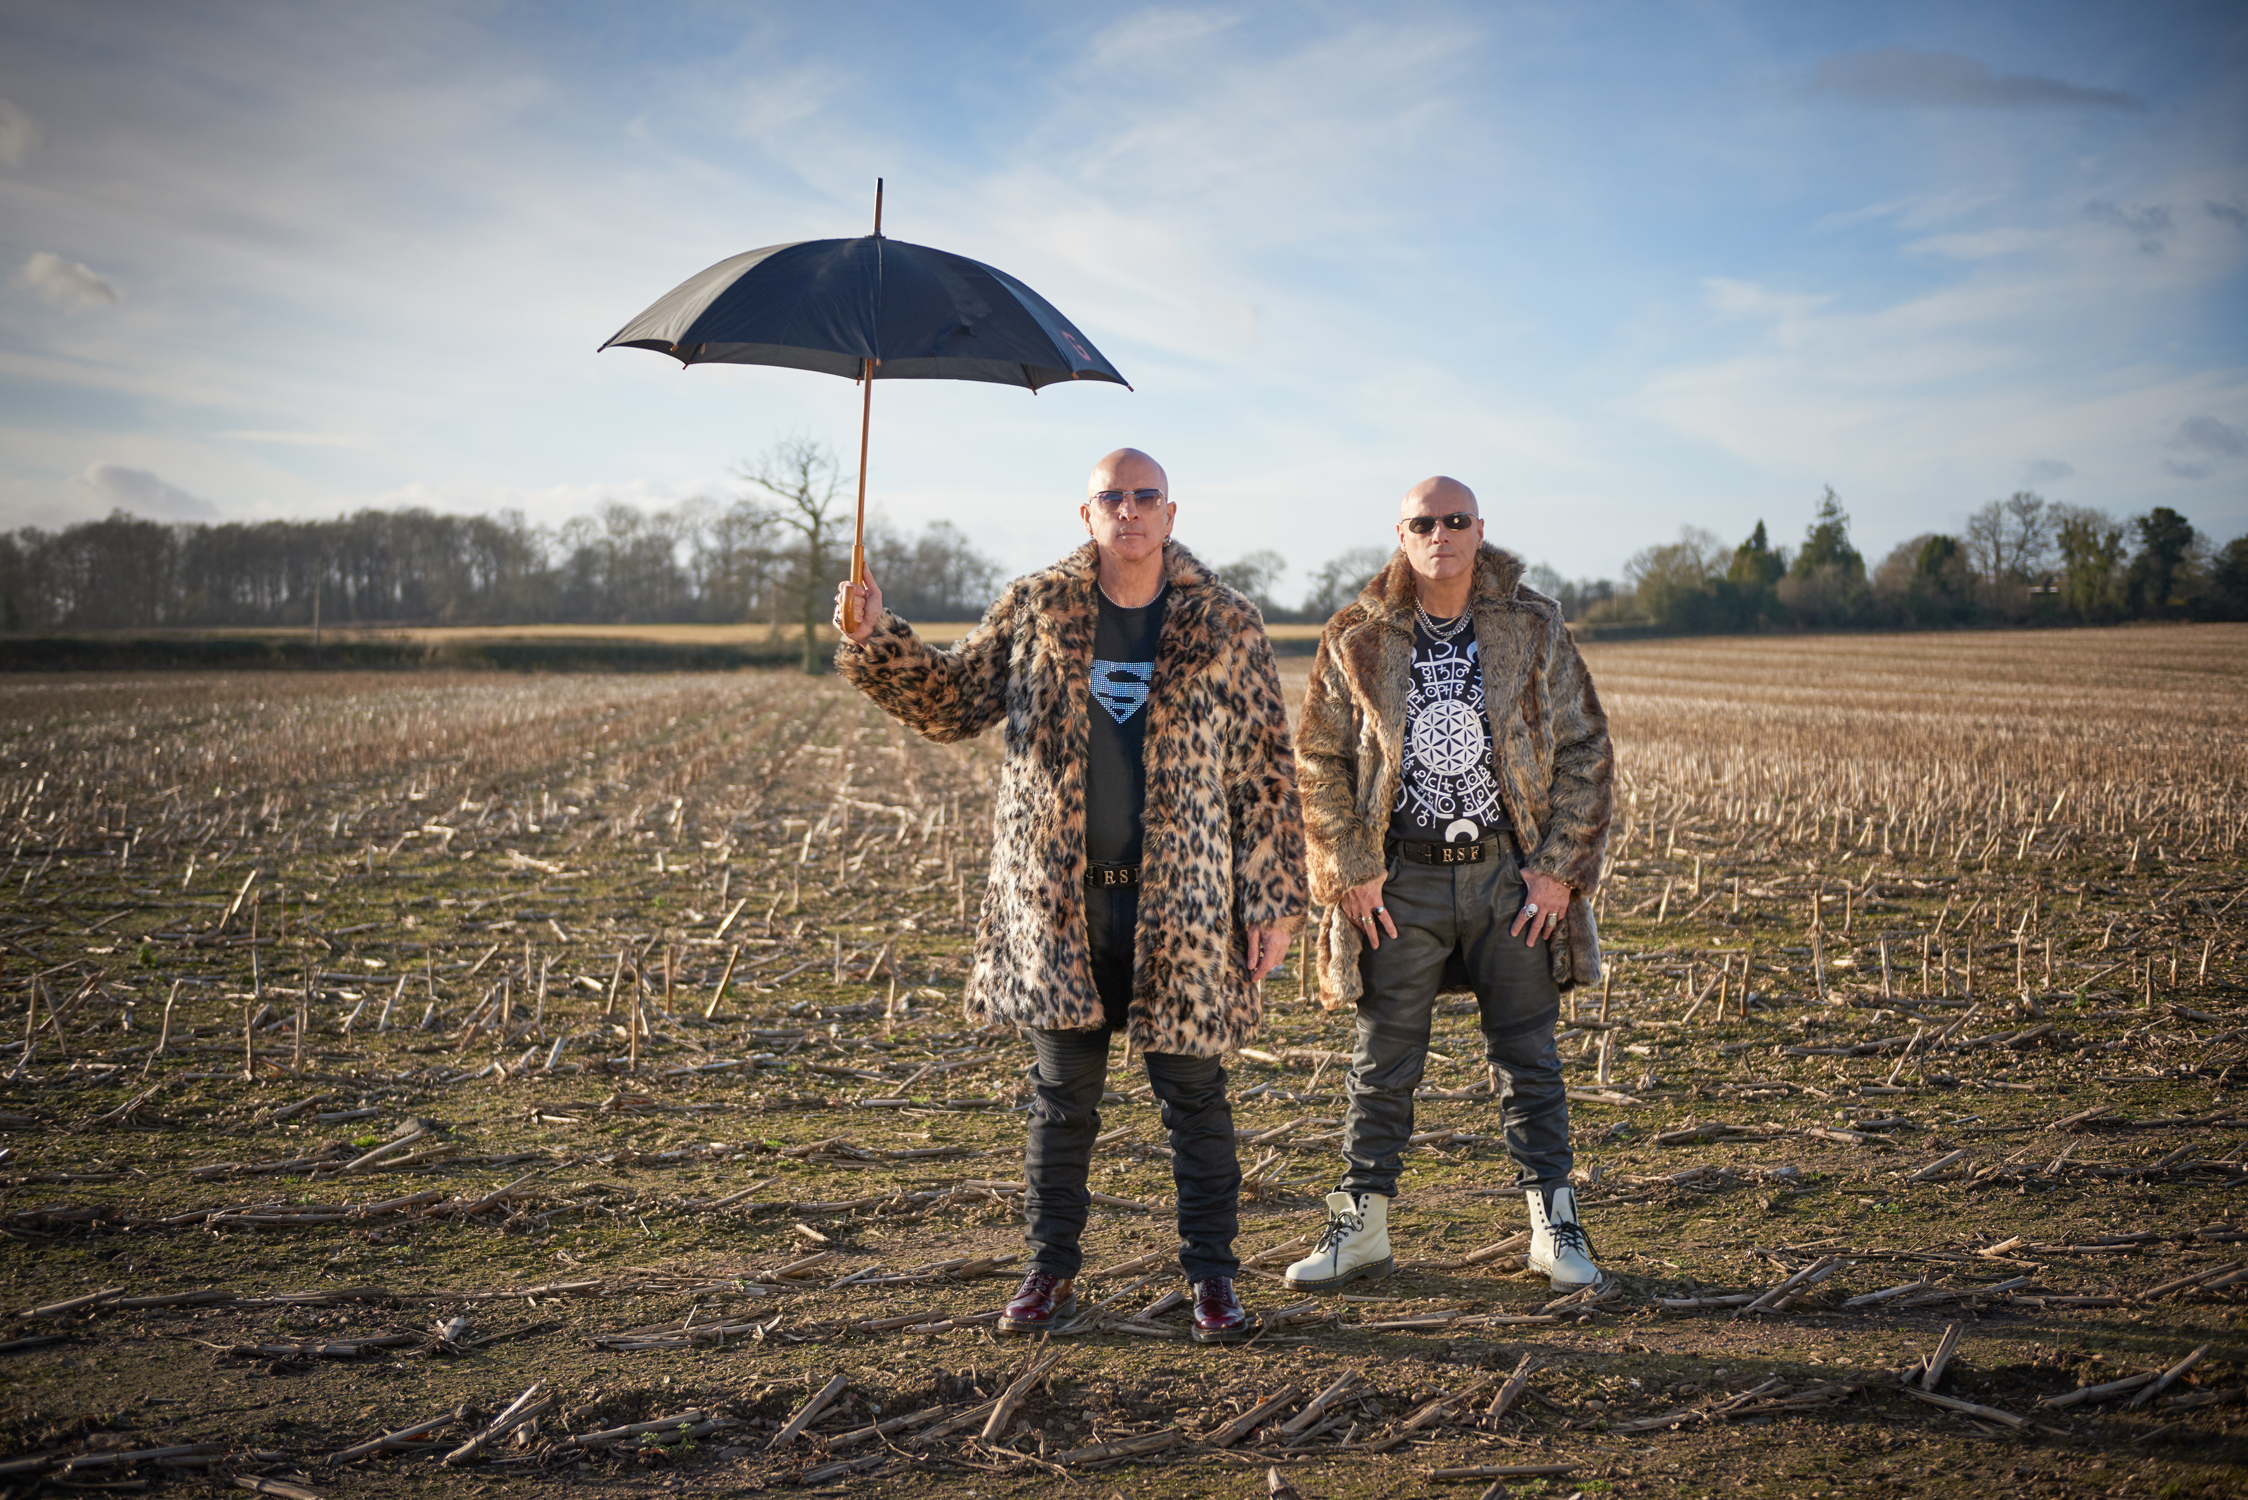 """2017 has been quite a ride for  Right Said Fred . Earlier this year they released their 9th studio album   Exactly!  . The album was two years in the making, featuring an array of special guests and  Fred  and  Richard Fairbrass ' signature mix of tongue-in-cheek observational pop. After the release of their album and single  Sweet Treats , the boys performed all over the UK and Europe on a string of festival dates to promote the album before returning to interesting news.   Taylor Swift  returned with the first single from her long-awaited and highly anticipated 6th studio album  Reputation  and gave Right Said Fred a writing credit on her single  Look What You Made Me Do . The single interpolated the boys' iconic 90s hit  I'm Too Sexy , welcoming in a new generation of fans more than 26 years after it debuted.  Swift and her team reached out to the brothers to let them know about the interpolation not long before the single dropped but the sound of the track itself remained shrouded in mystery, and the pair first heard it on the morning of Friday 25th August 2017 along with the rest of the world. Swift's unique interpolation has brought much deserved attention back to the band, who are one of music's most enduring pop acts.   """"We're really happy with Taylor's take,"""" says frontman Richard. """"Her track is broody and slightly dark - we love it.""""  The brothers have reached fans all across the globe, selling in excess of 7 million copies of their debut album   Up  worldwide, receiving two  Ivor Novello 's for  I'm Too Sexy  and  Deeply Dippy  as well as a  Brit Award  nomination for  Best British Act . Fred and Richard have also played  The Royal Variety Performance , met the Queen, released a track for  Comic Relief  (  Stick It Out  ) and, most importantly, Richard was voted  Rear of the Year  by  Smash Hits Magazine .  Right Said Fred continue to appear at various special events and TV shows all over the world performing in front of 200,000 people at the 2006  World """